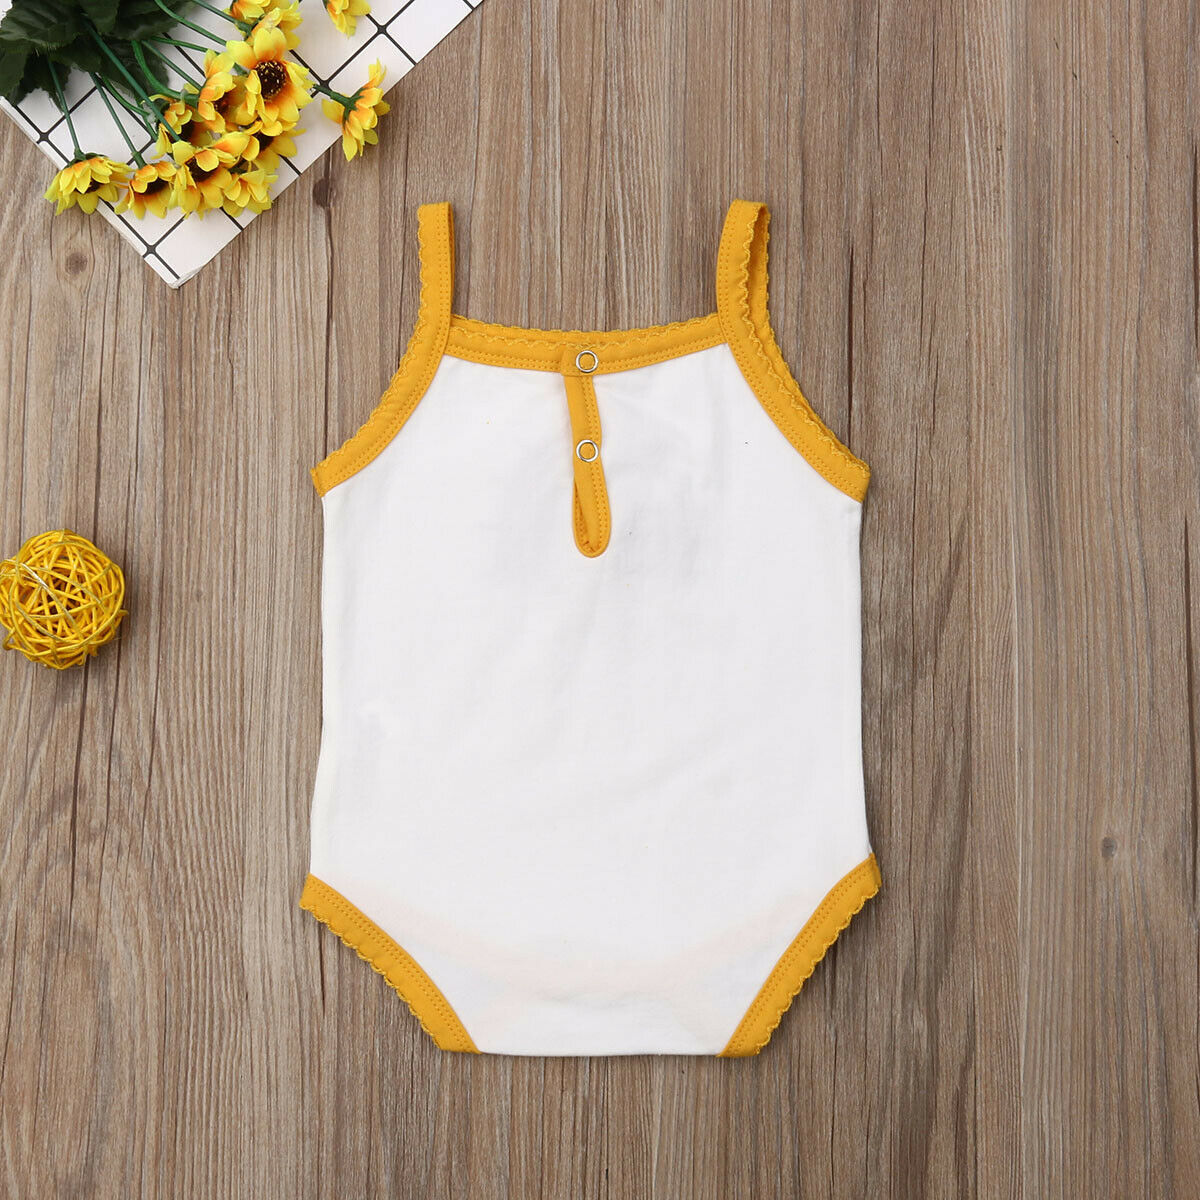 0 24M Newborn Baby Girls Boys Rompers Rainbow Jumpsuit Sleeveless Cotton Clothes Summer Baby Costumes in Rompers from Mother Kids